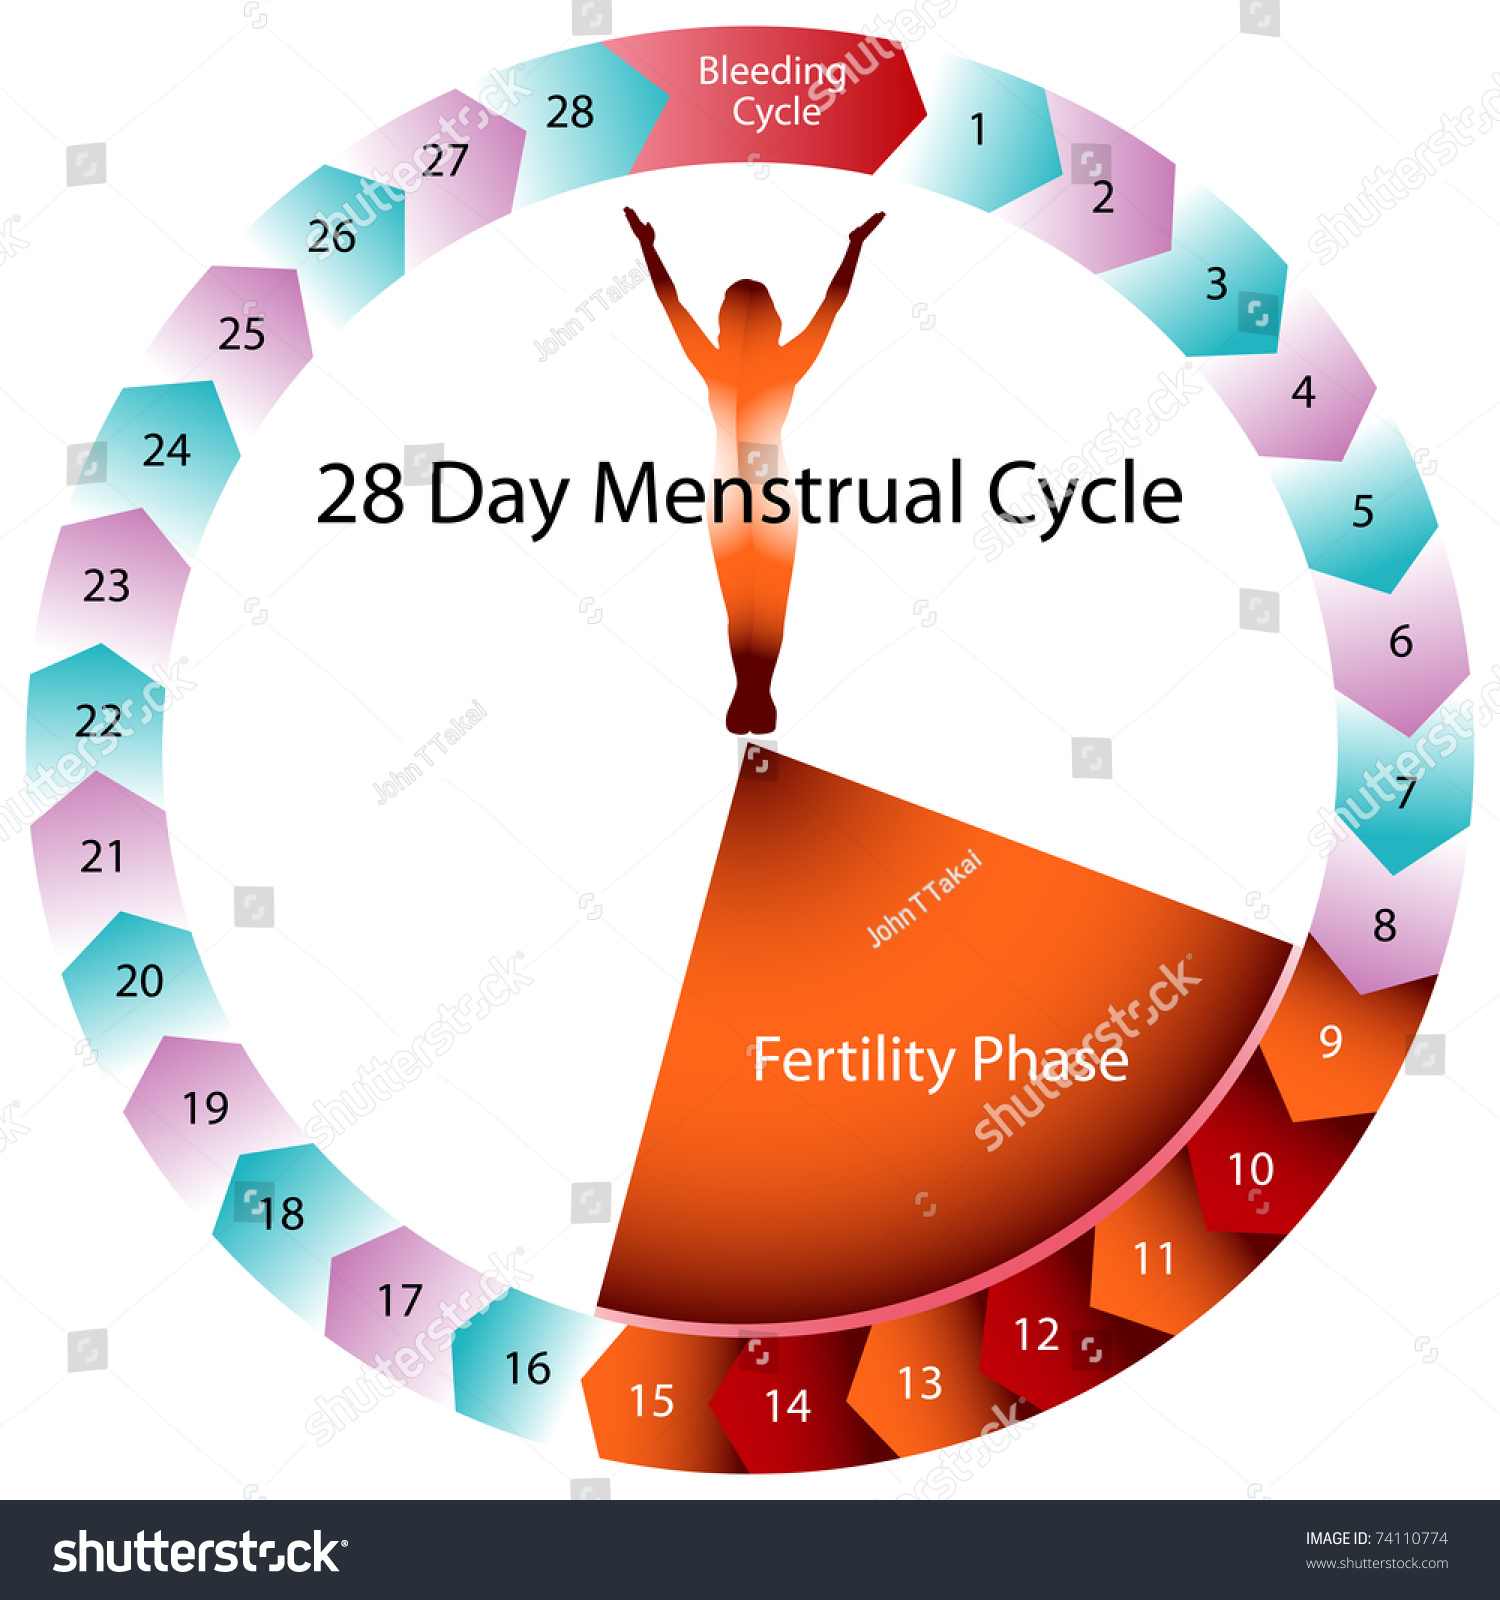 https://image.shutterstock.com/z/stock-vector-an-image-of-a-menstrual-cycle-chart-74110774.jpg